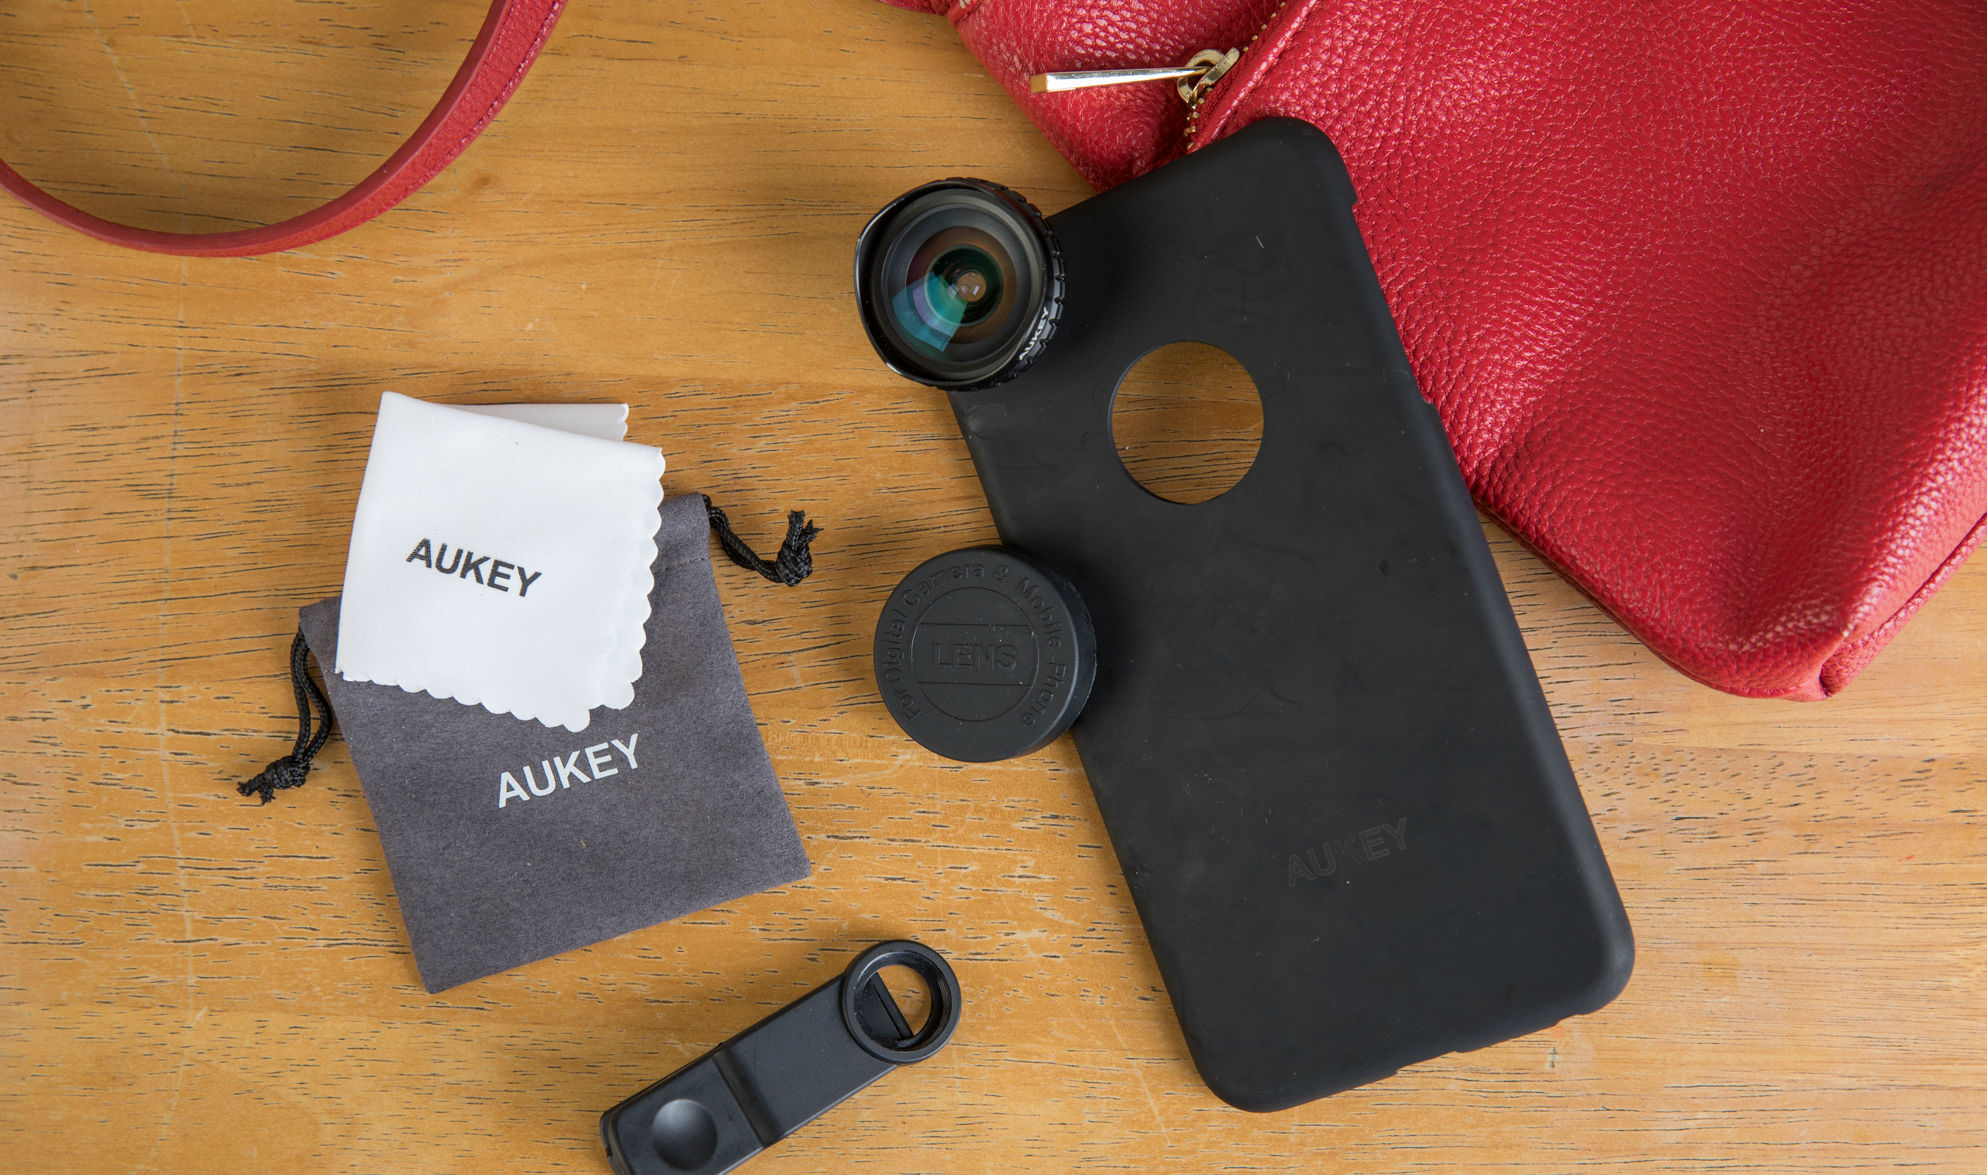 iphone-Aukey lens